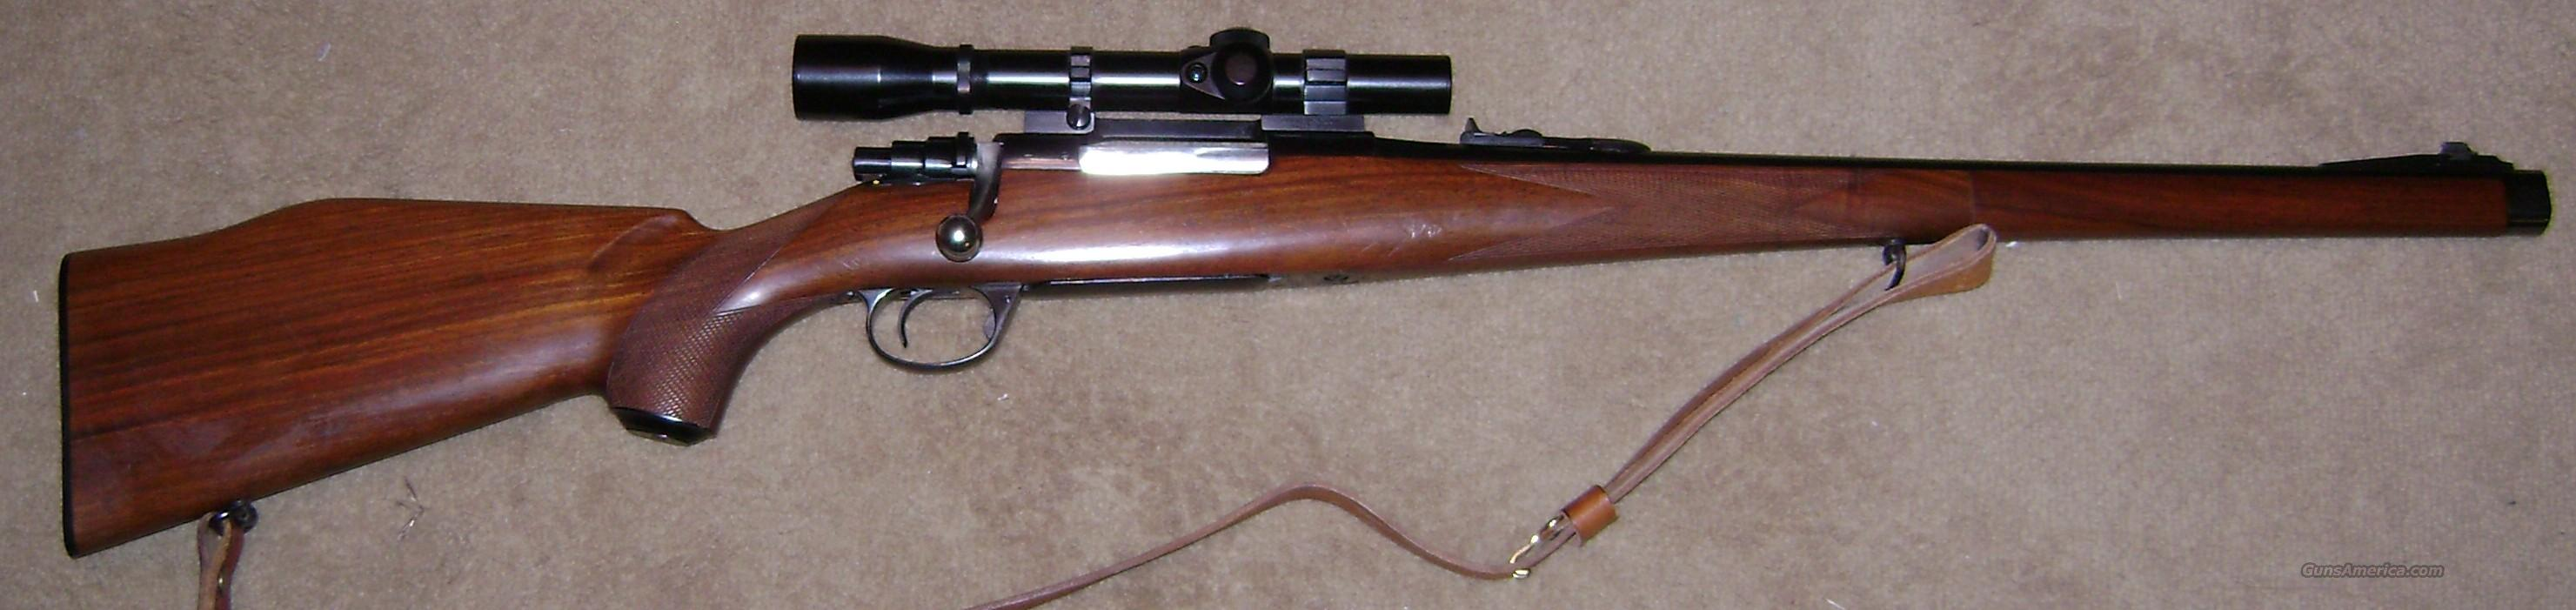 FS: Husqvarna Model 456 Mannlicher in 7x57   Guns > Rifles > Husqvarna Rifles